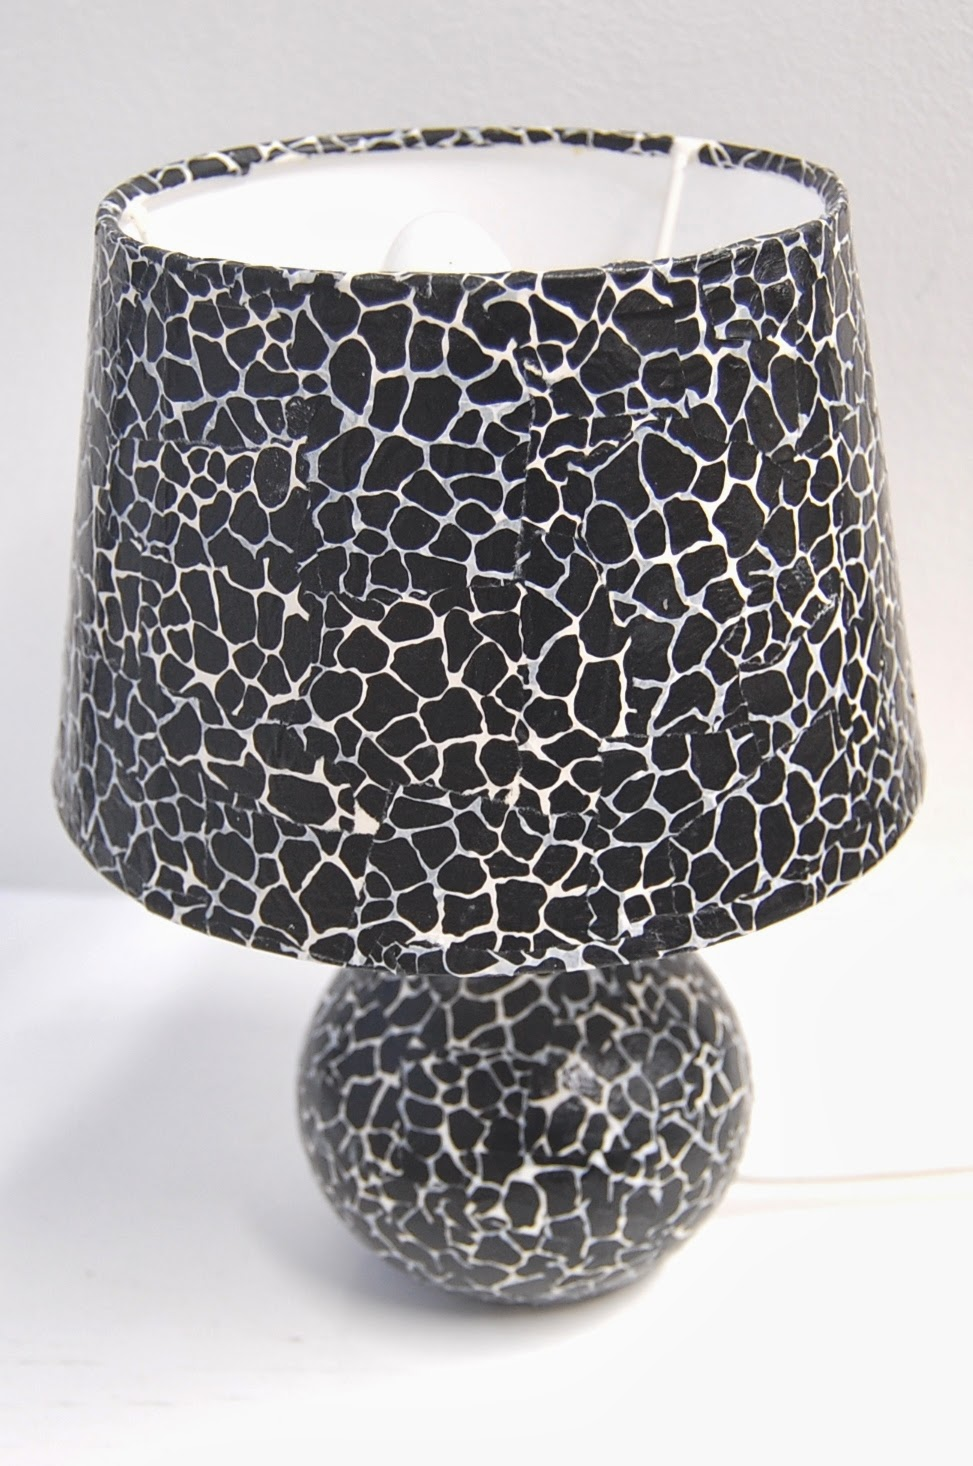 Decopatch \u0026 Decoupage UK Decopatch Lamp Base and Lampshade